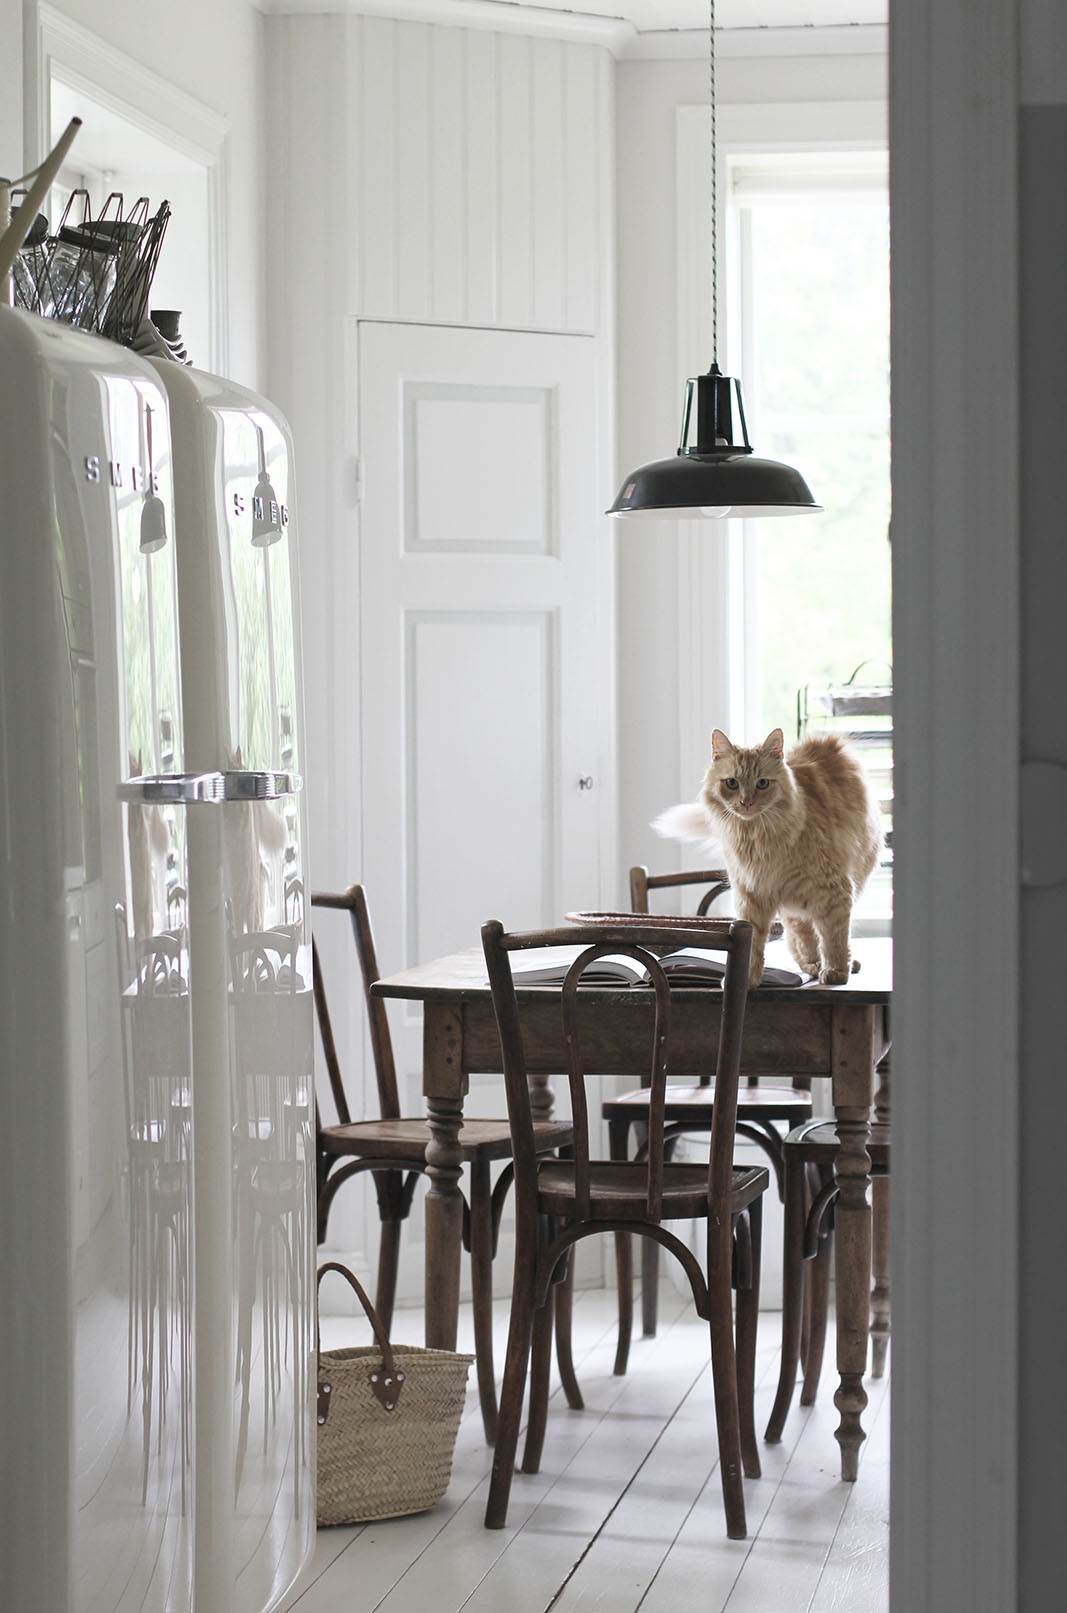 A Stylist's Island Nest in the Stockholm Archipelago, on Design*Sponge